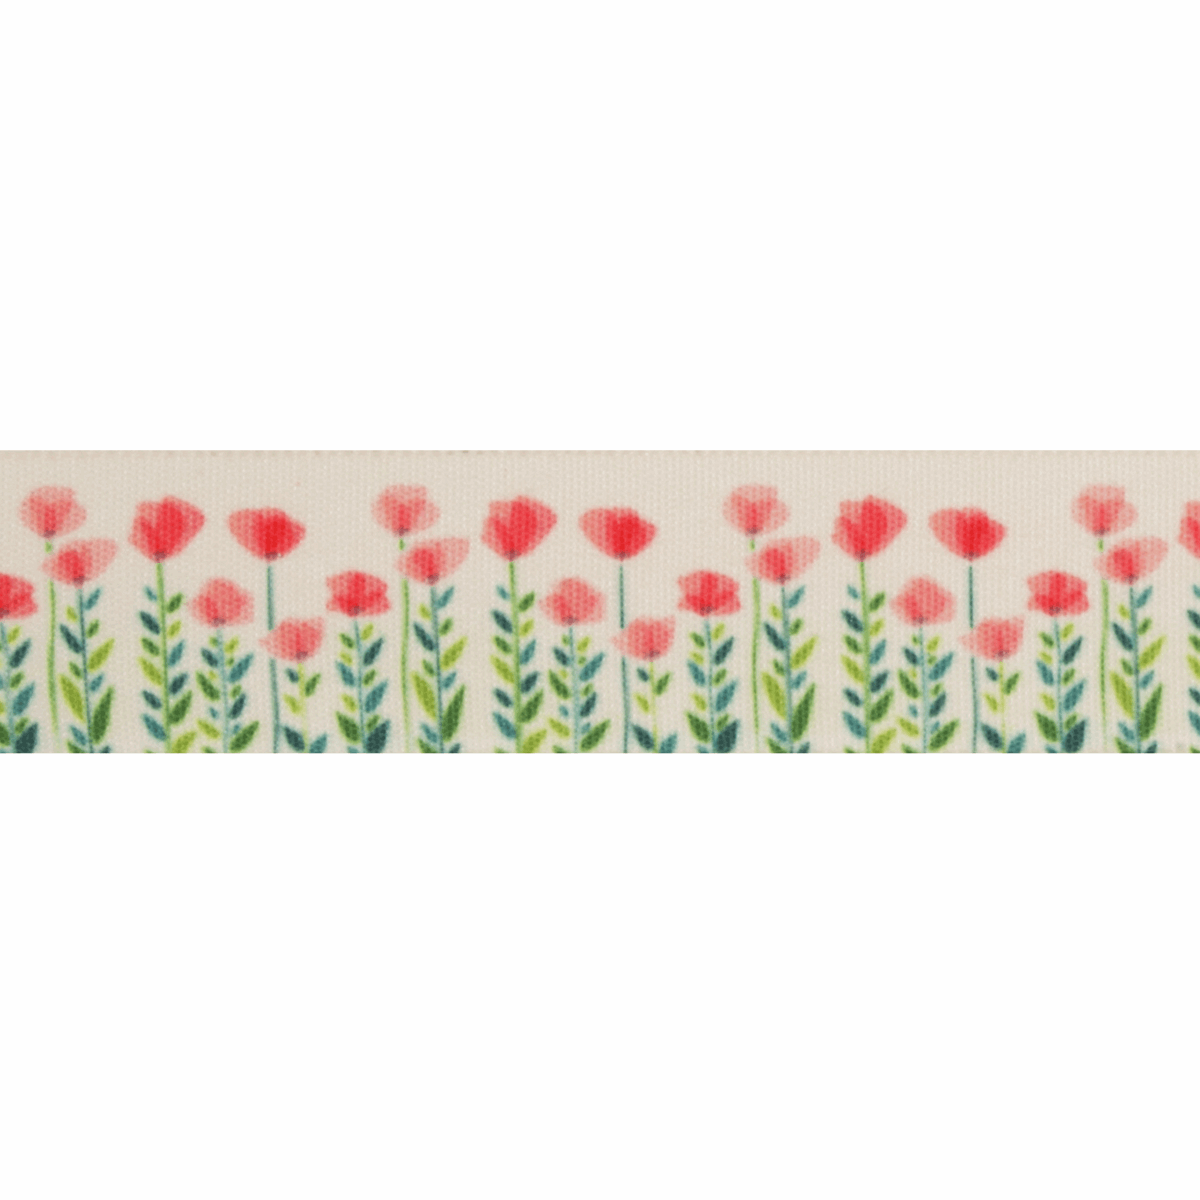 Picture of Exclusive to Groves: Poppy and Leaves: 25m x 25mm: Multi